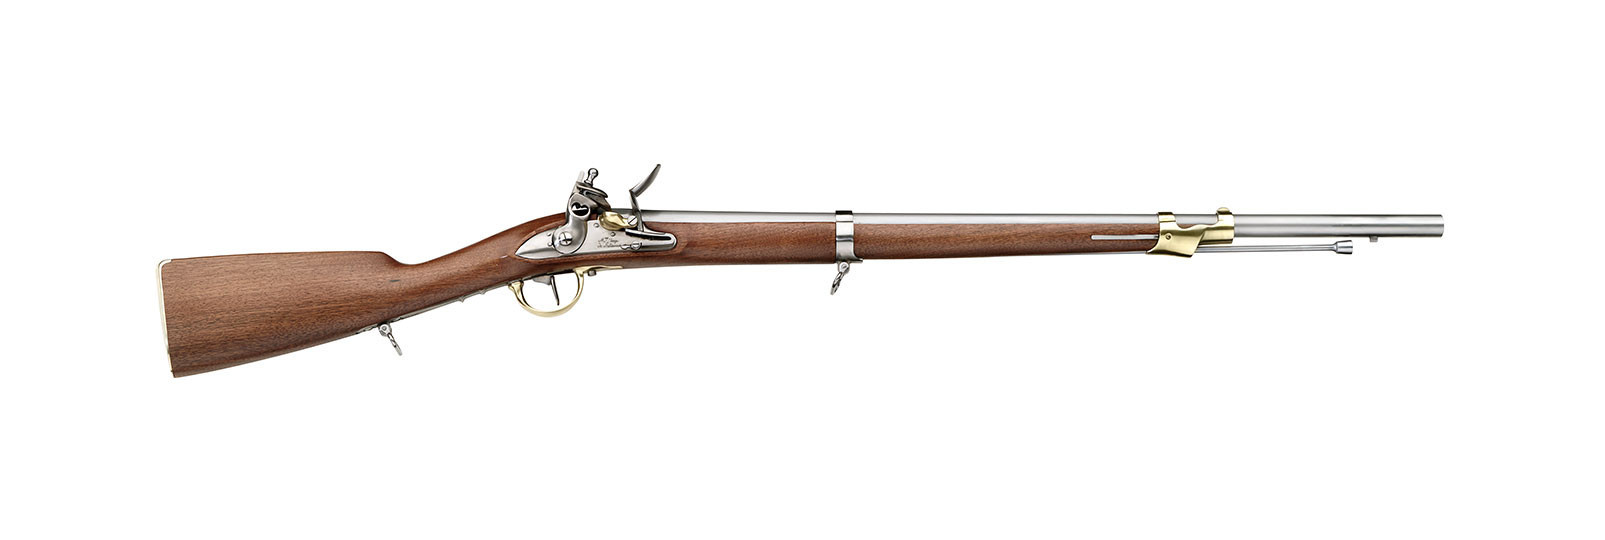 An IX de cavallerie Rifle